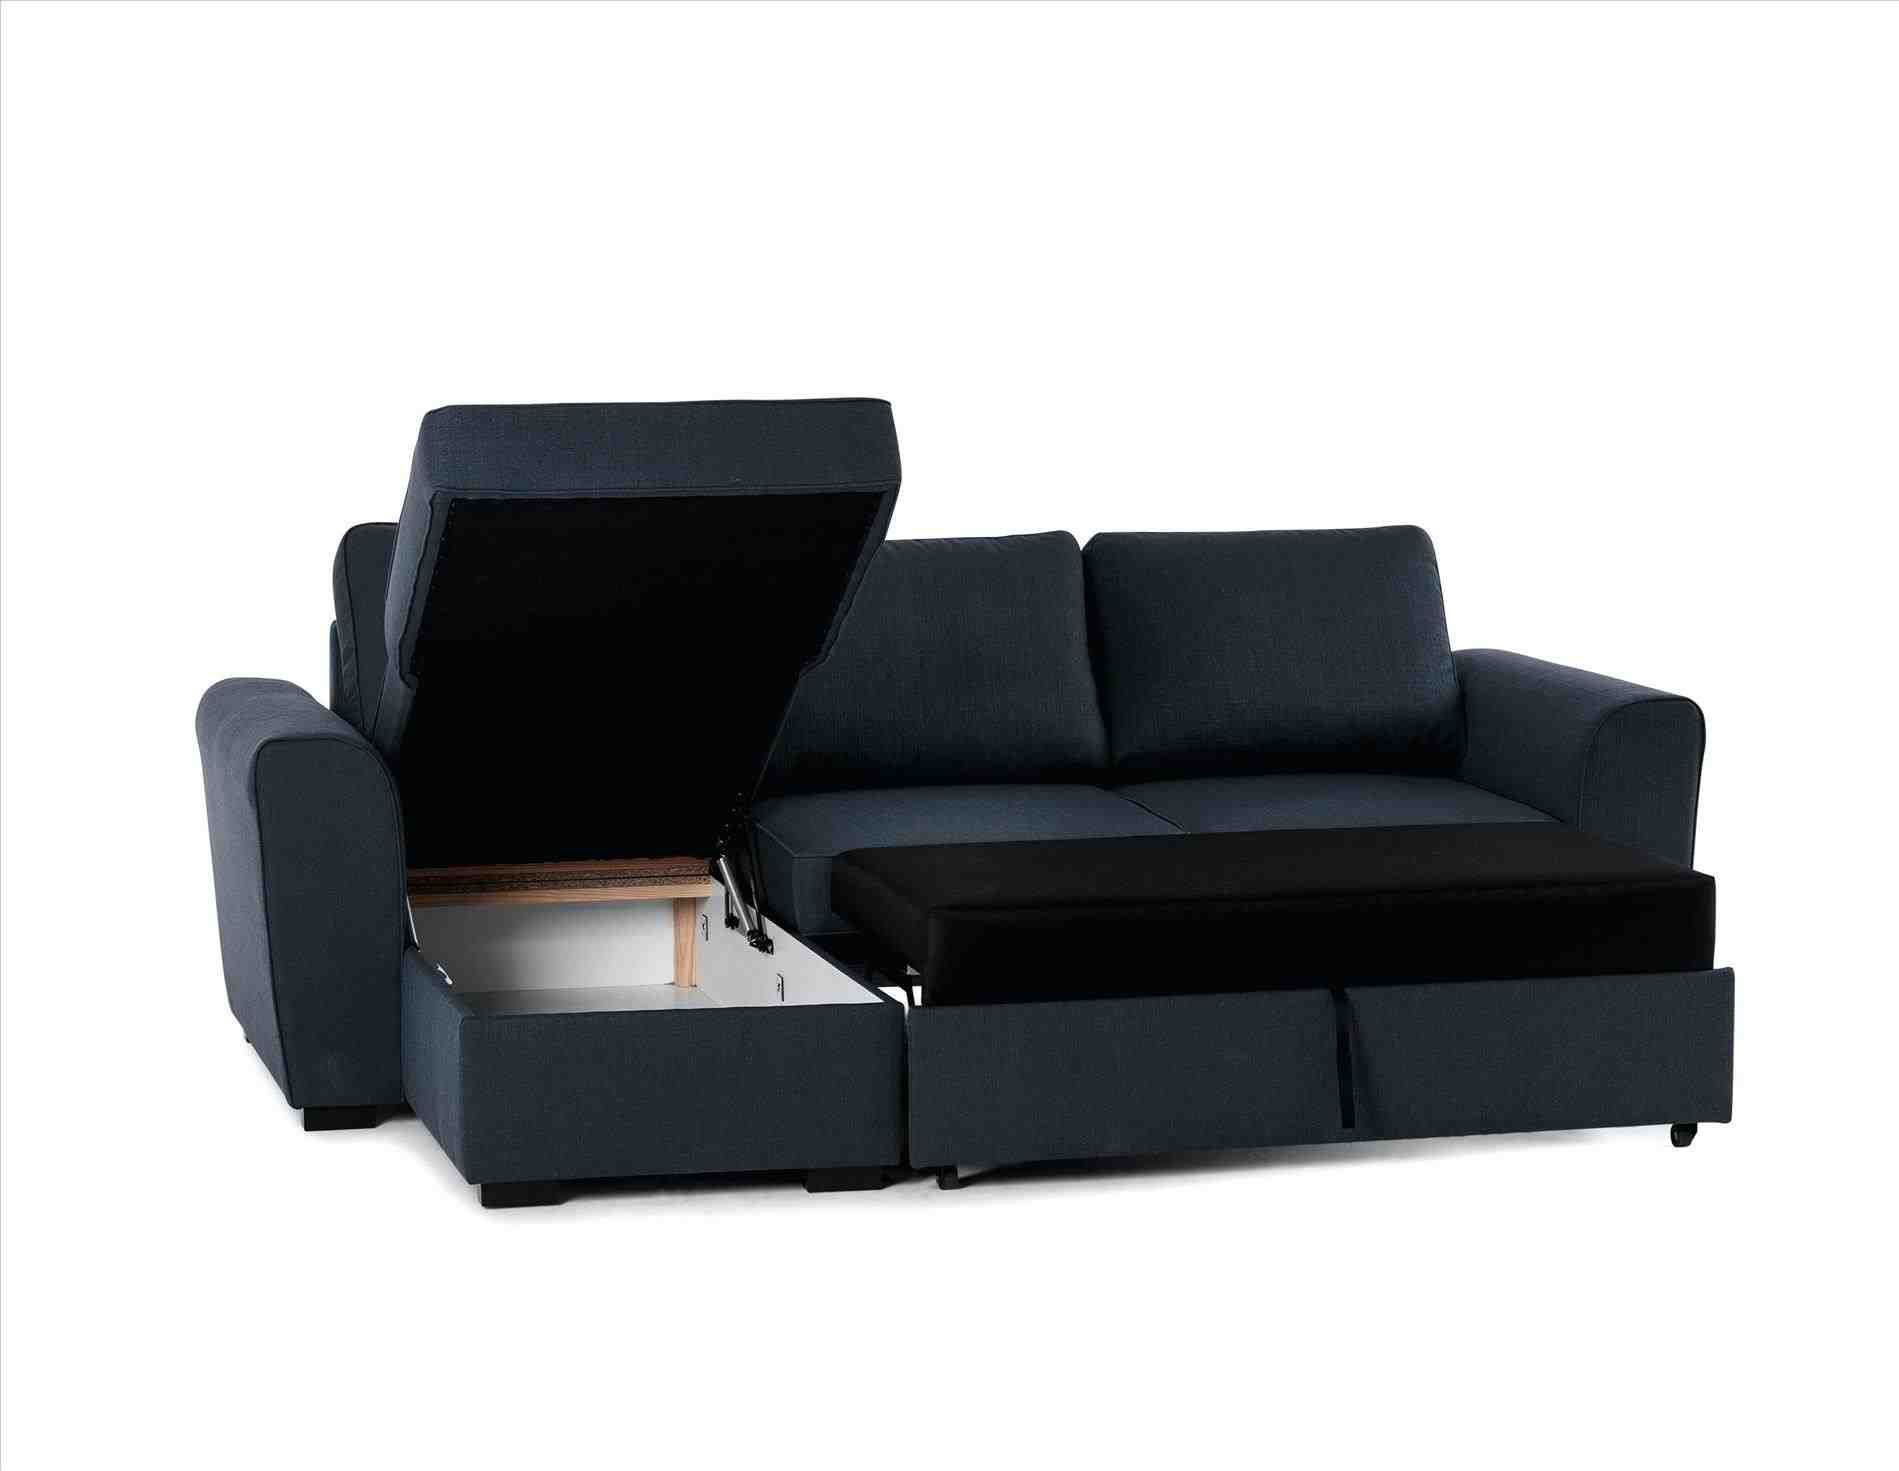 Where To Get Sofa Bed In Singapore Table Combo Cheap Beds Uk Clearance Melbourne Popamazing Black Red Brown Super Strong Soft Space Saving Design Sofabed